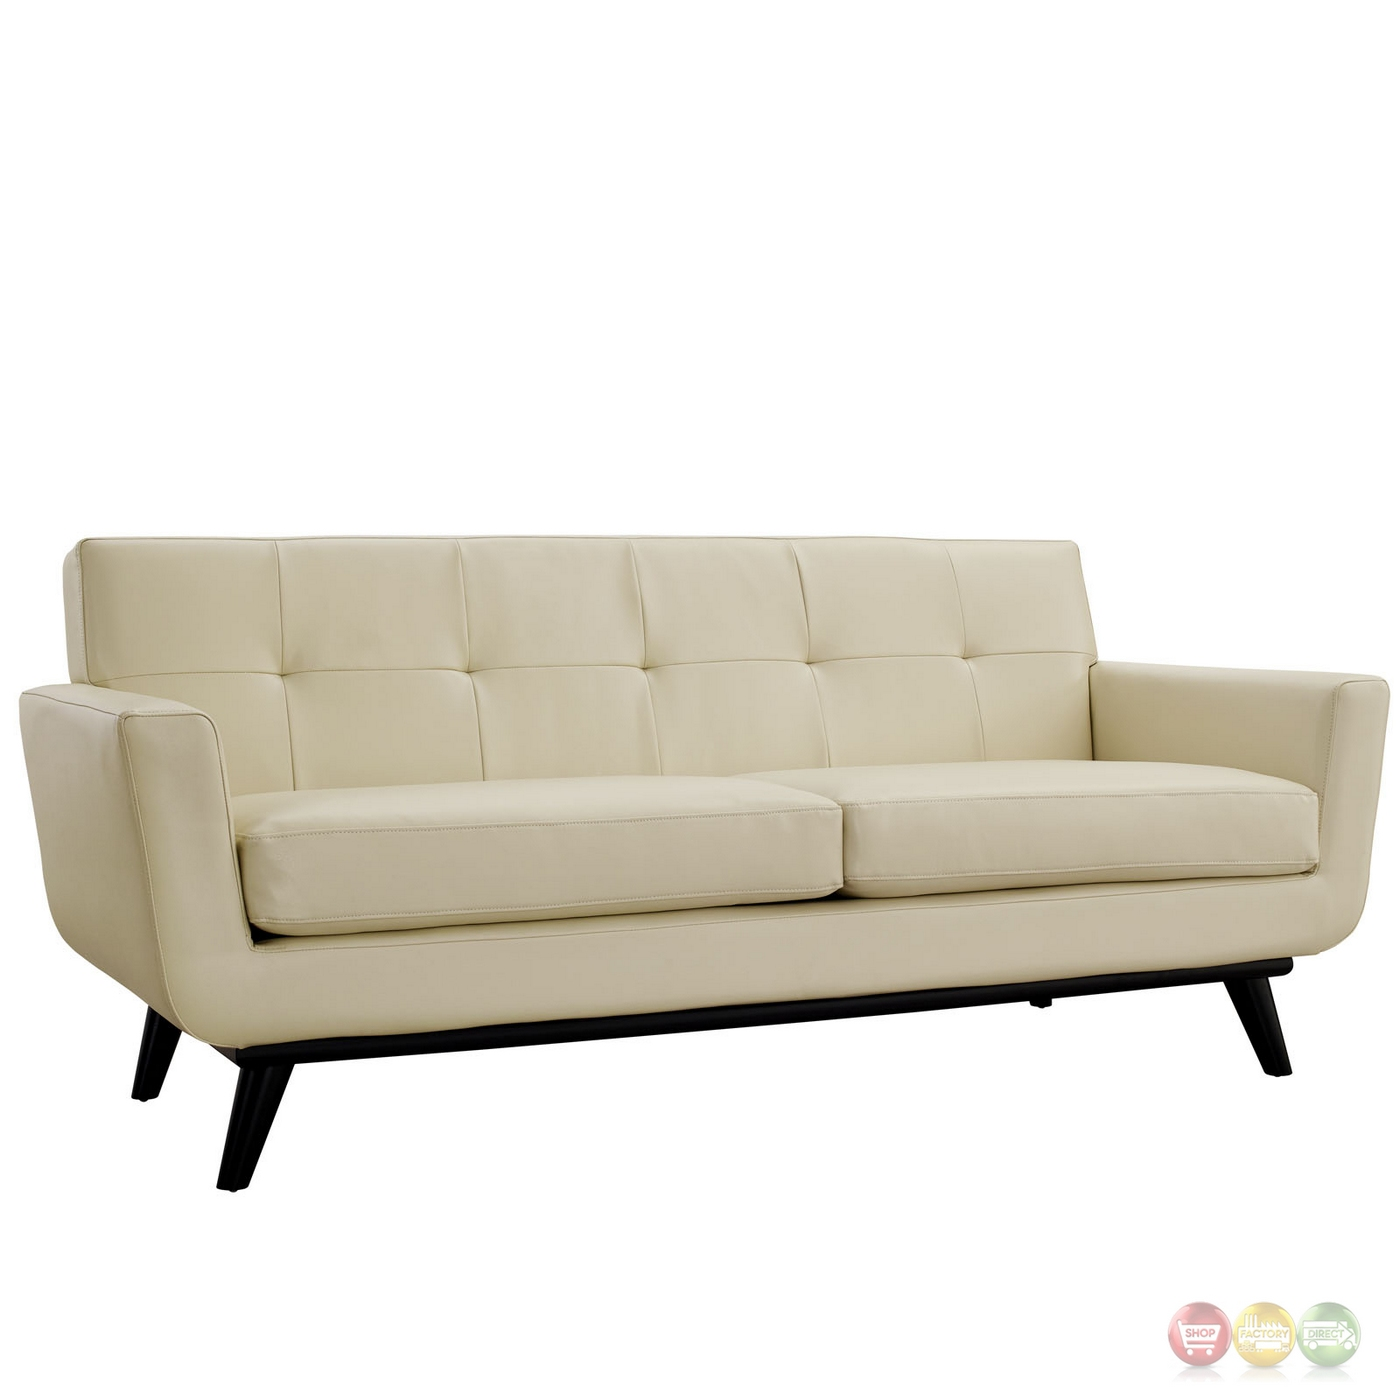 Mid Century Modern Bonded Leather Living Room Sofa Camel: Mid-Century Modern Engage 2pc Button-Tufted Leather Living